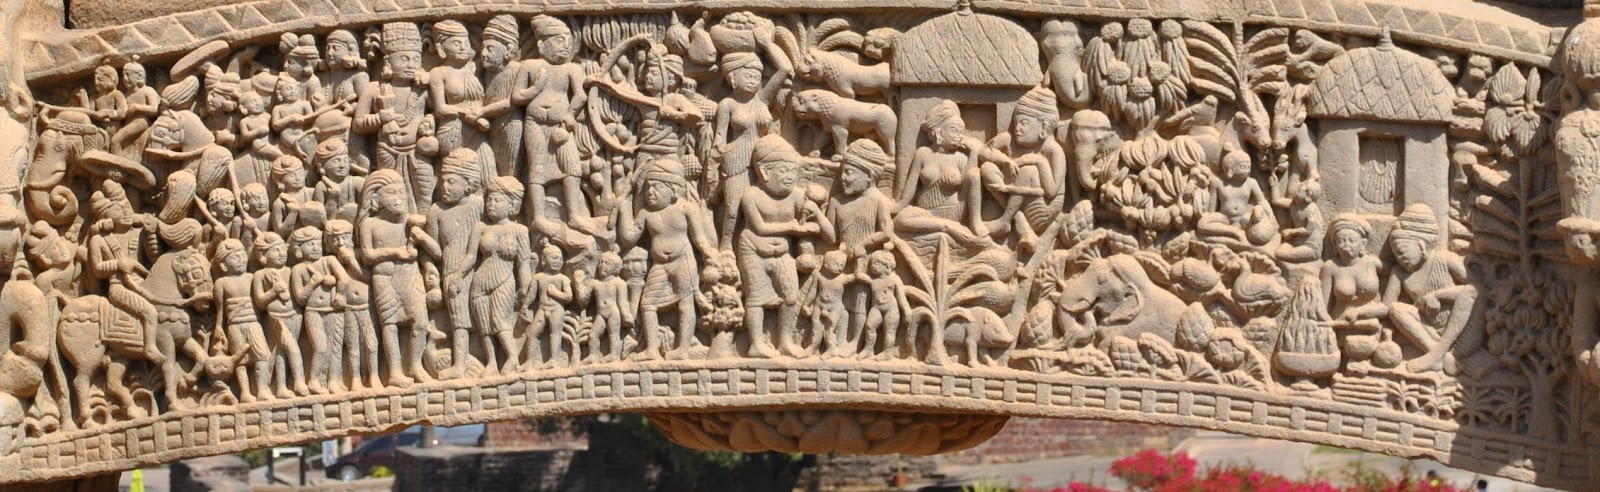 Northern Gateway - Jataka tale of Vasantara reiterating importance of sacrifice. From left Vasantara is shown leaving palace with children, then staying in a hermit after giving away both his children